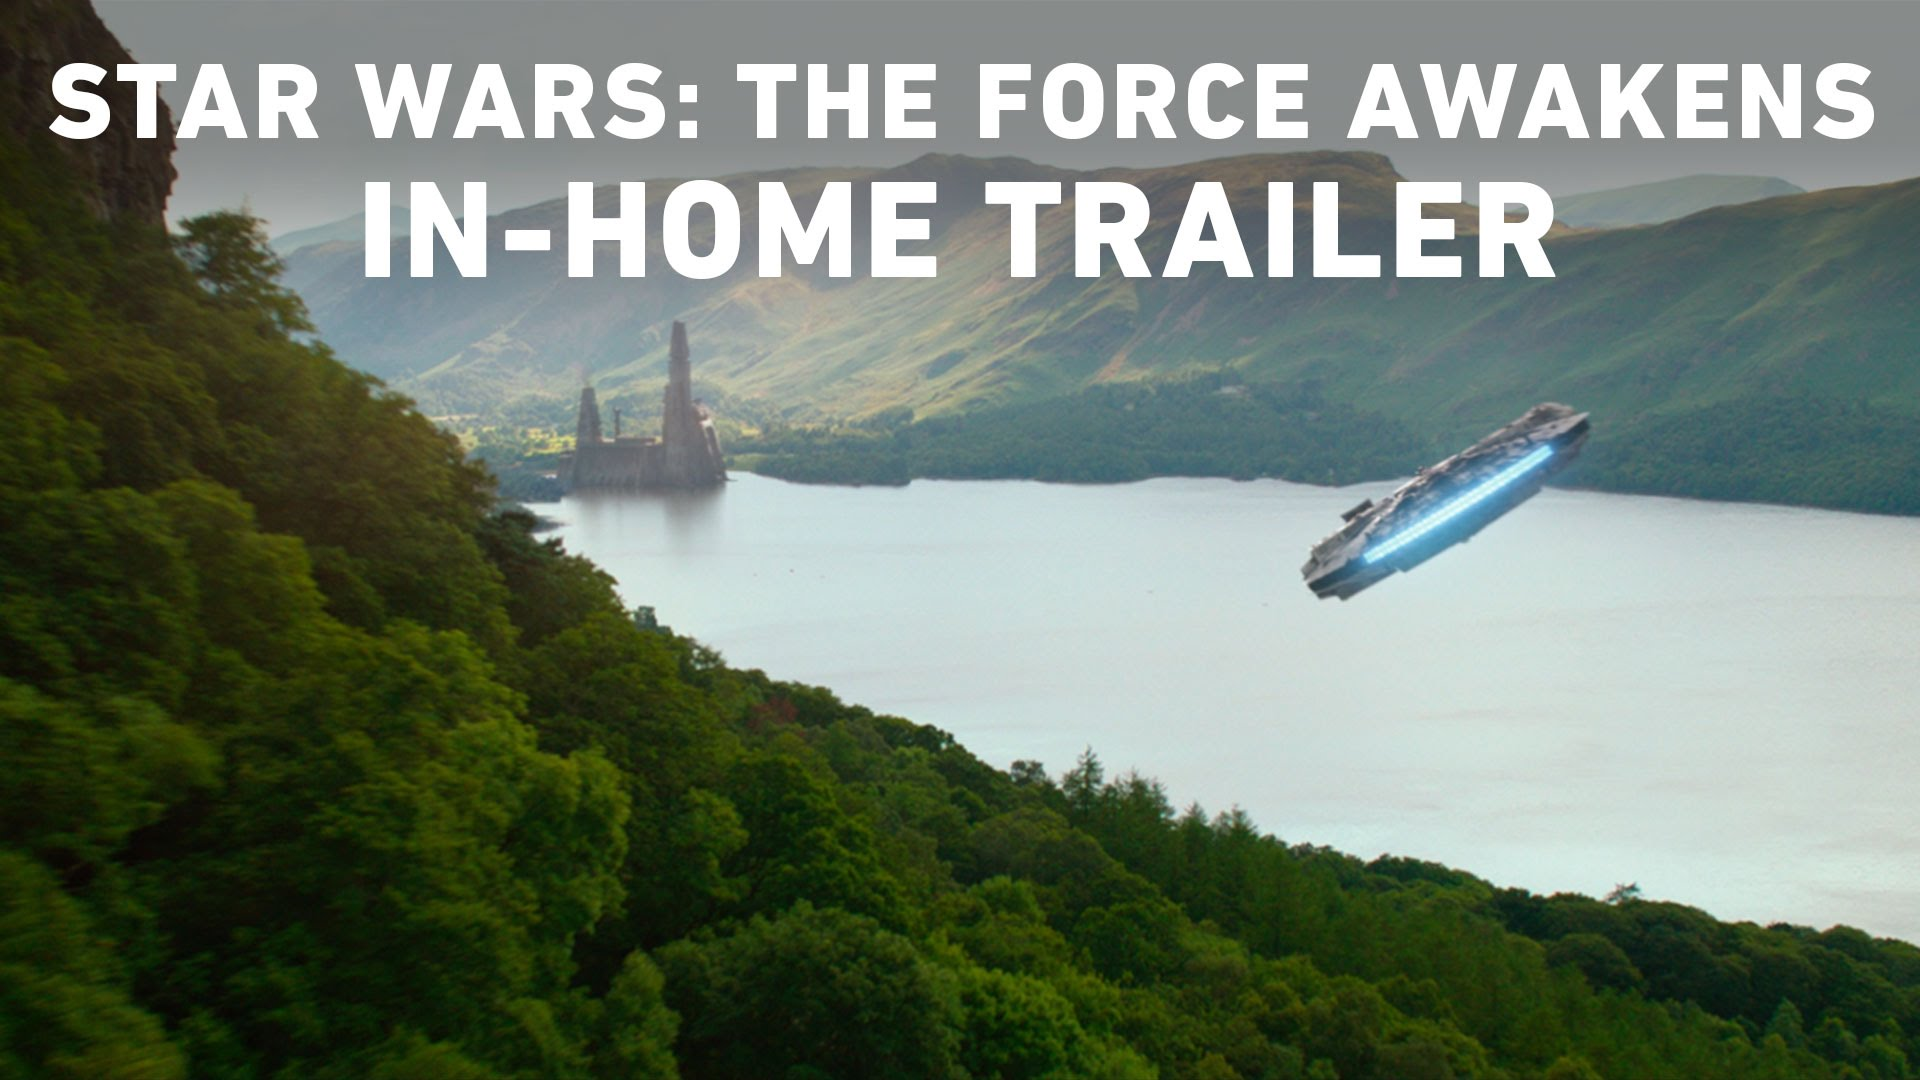 Star Wars: The Force Awakens In-Home Trailer